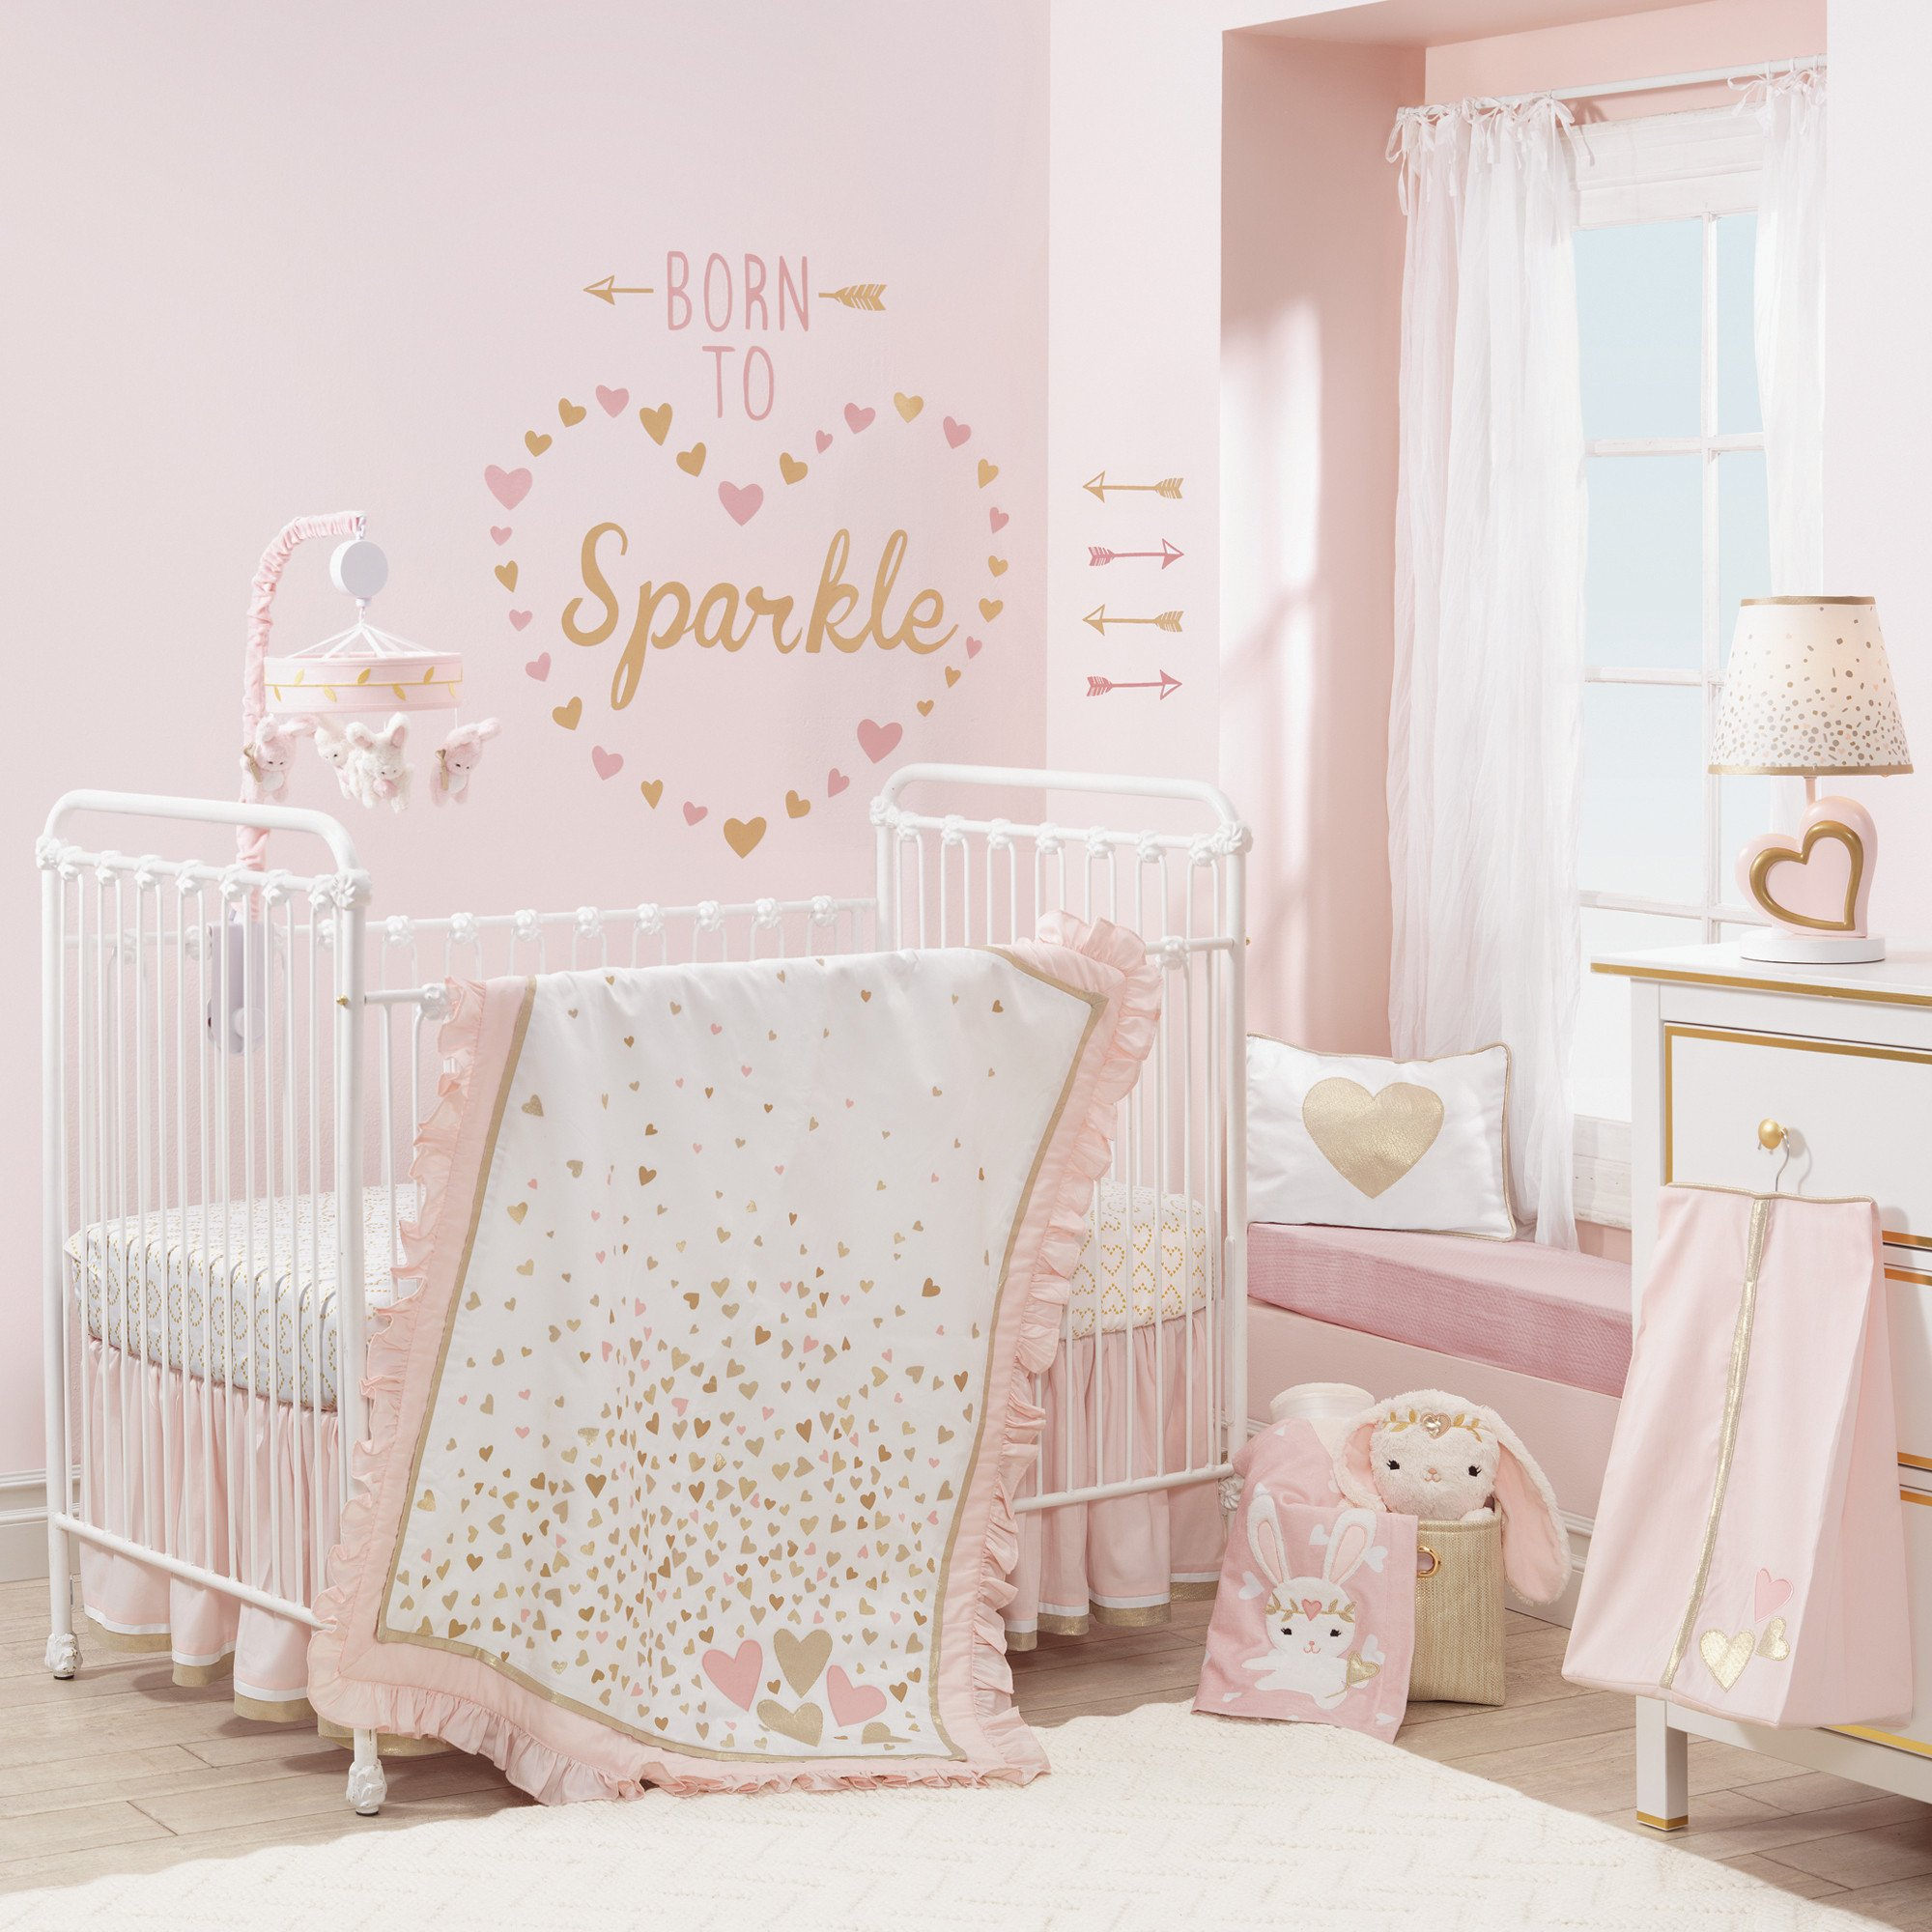 Lambs /& Ivy Pink//Gray//White Bunny 3-Piece Baby Crib Bedding Set